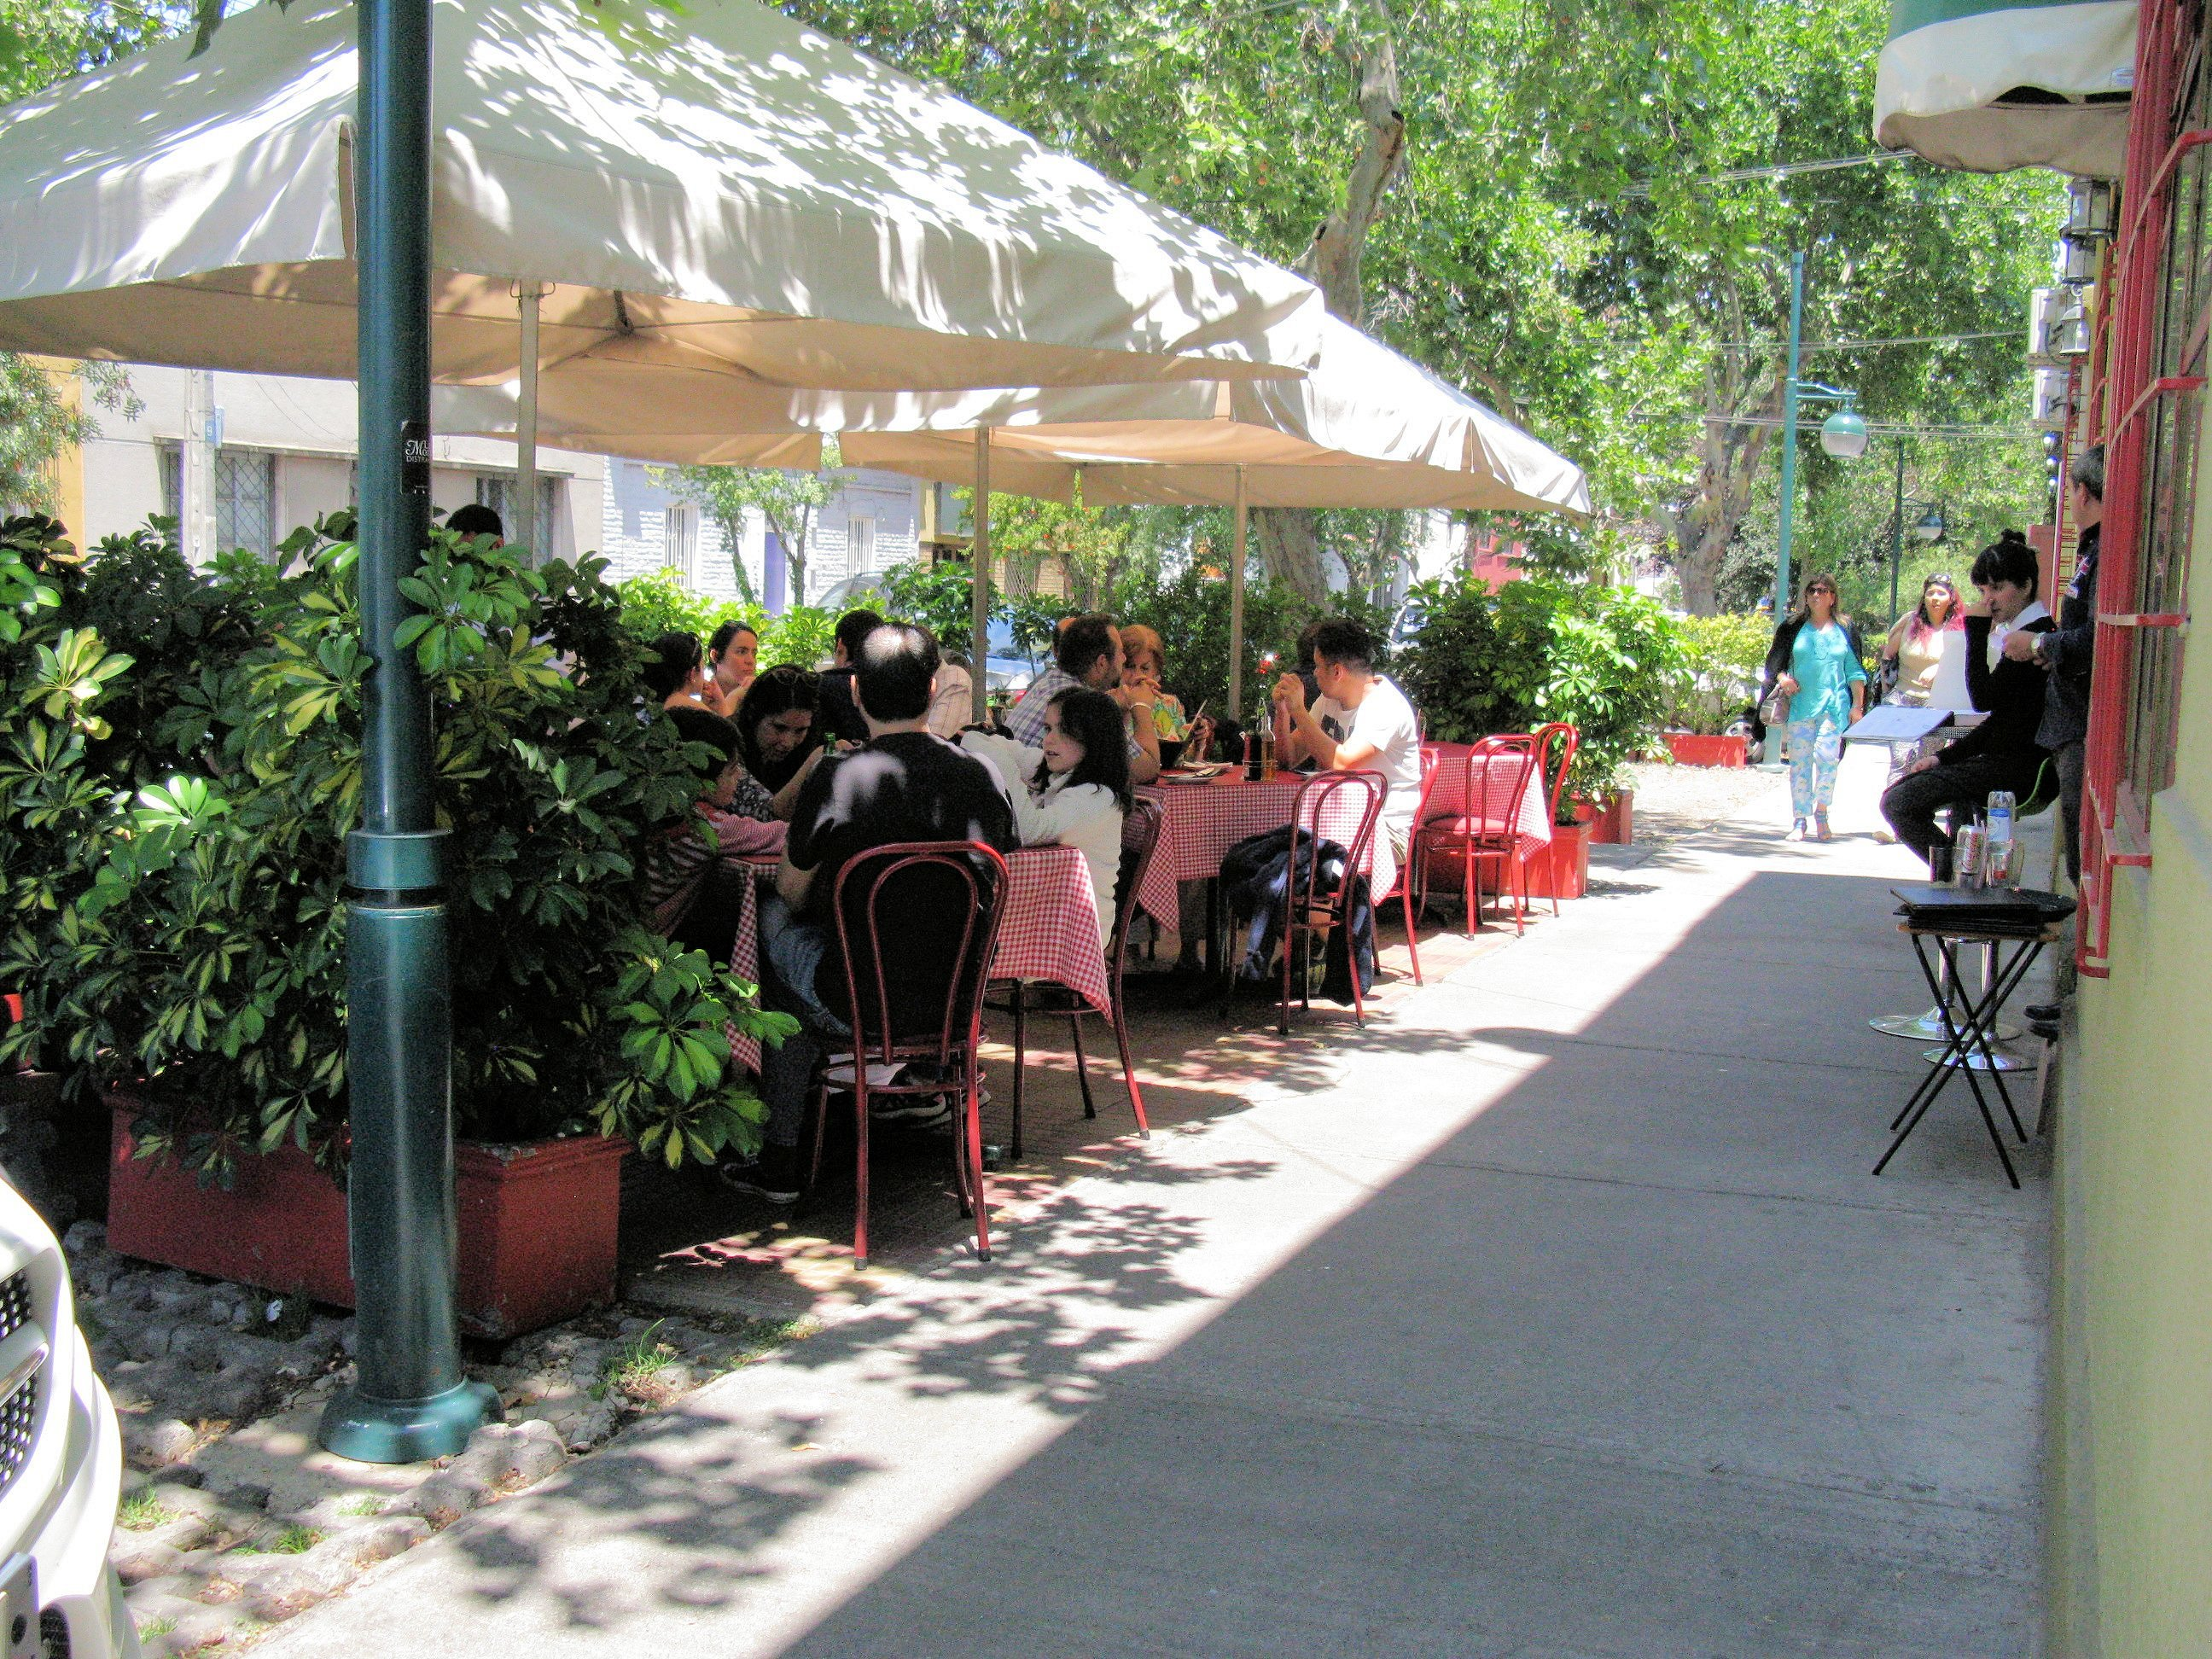 Barrio Italia is known for shaded streets,  sidewalk cafes, fine dining, and courtyard homes